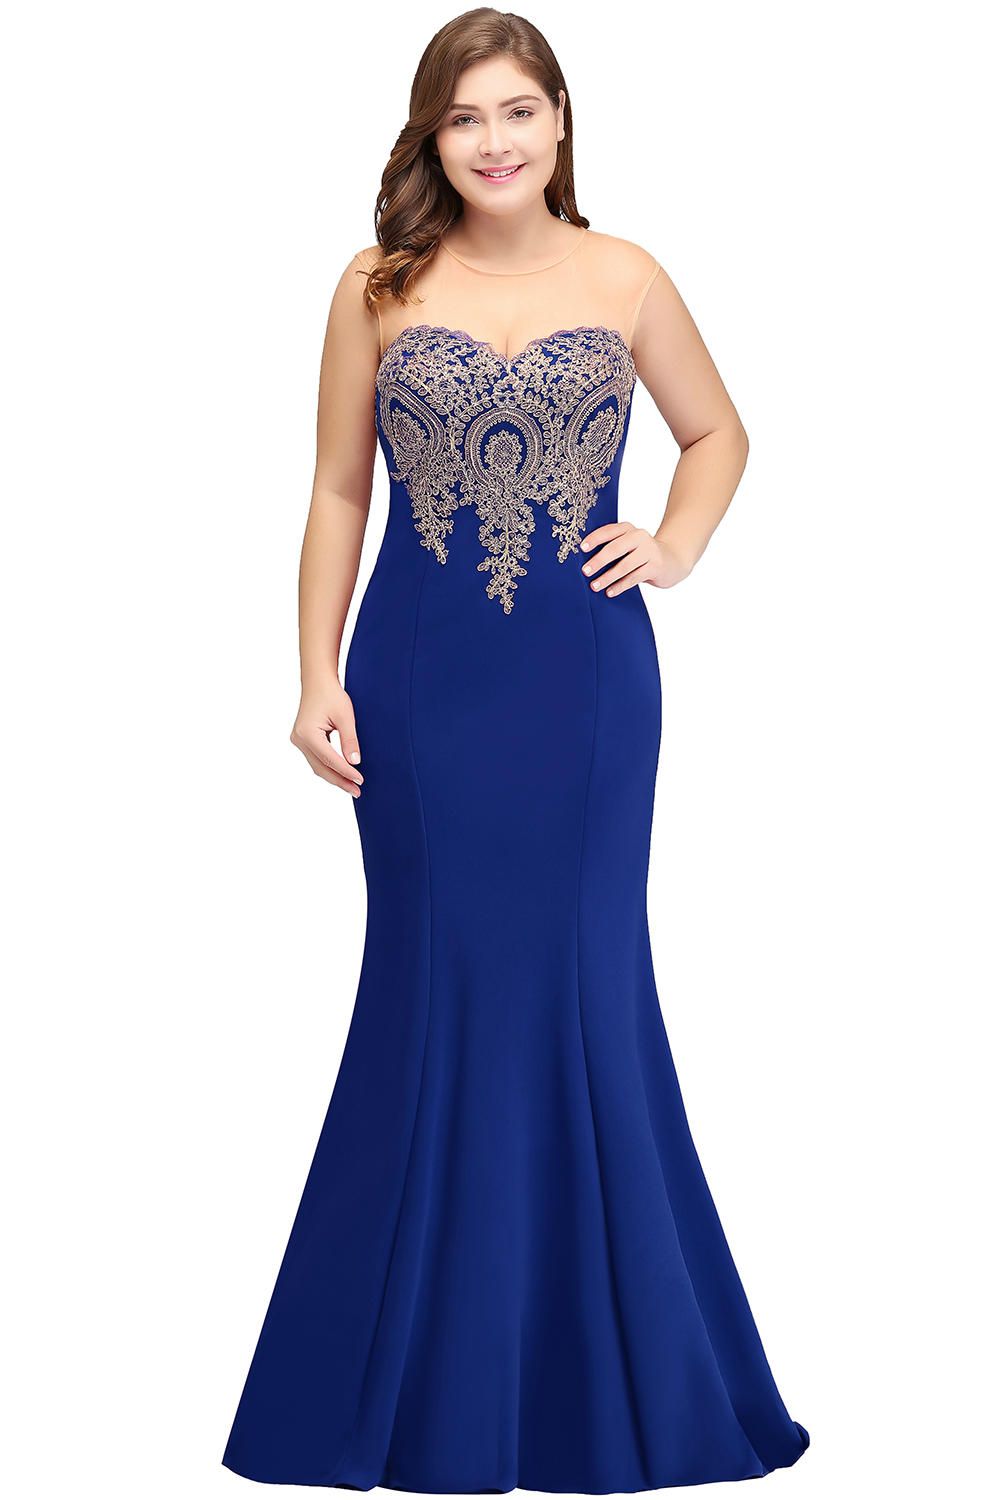 Mermaid Plus Size Long Prom Dresses Applique Sleeveless Green Prom Gown vestidos de gala in Prom Dresses from Weddings Events